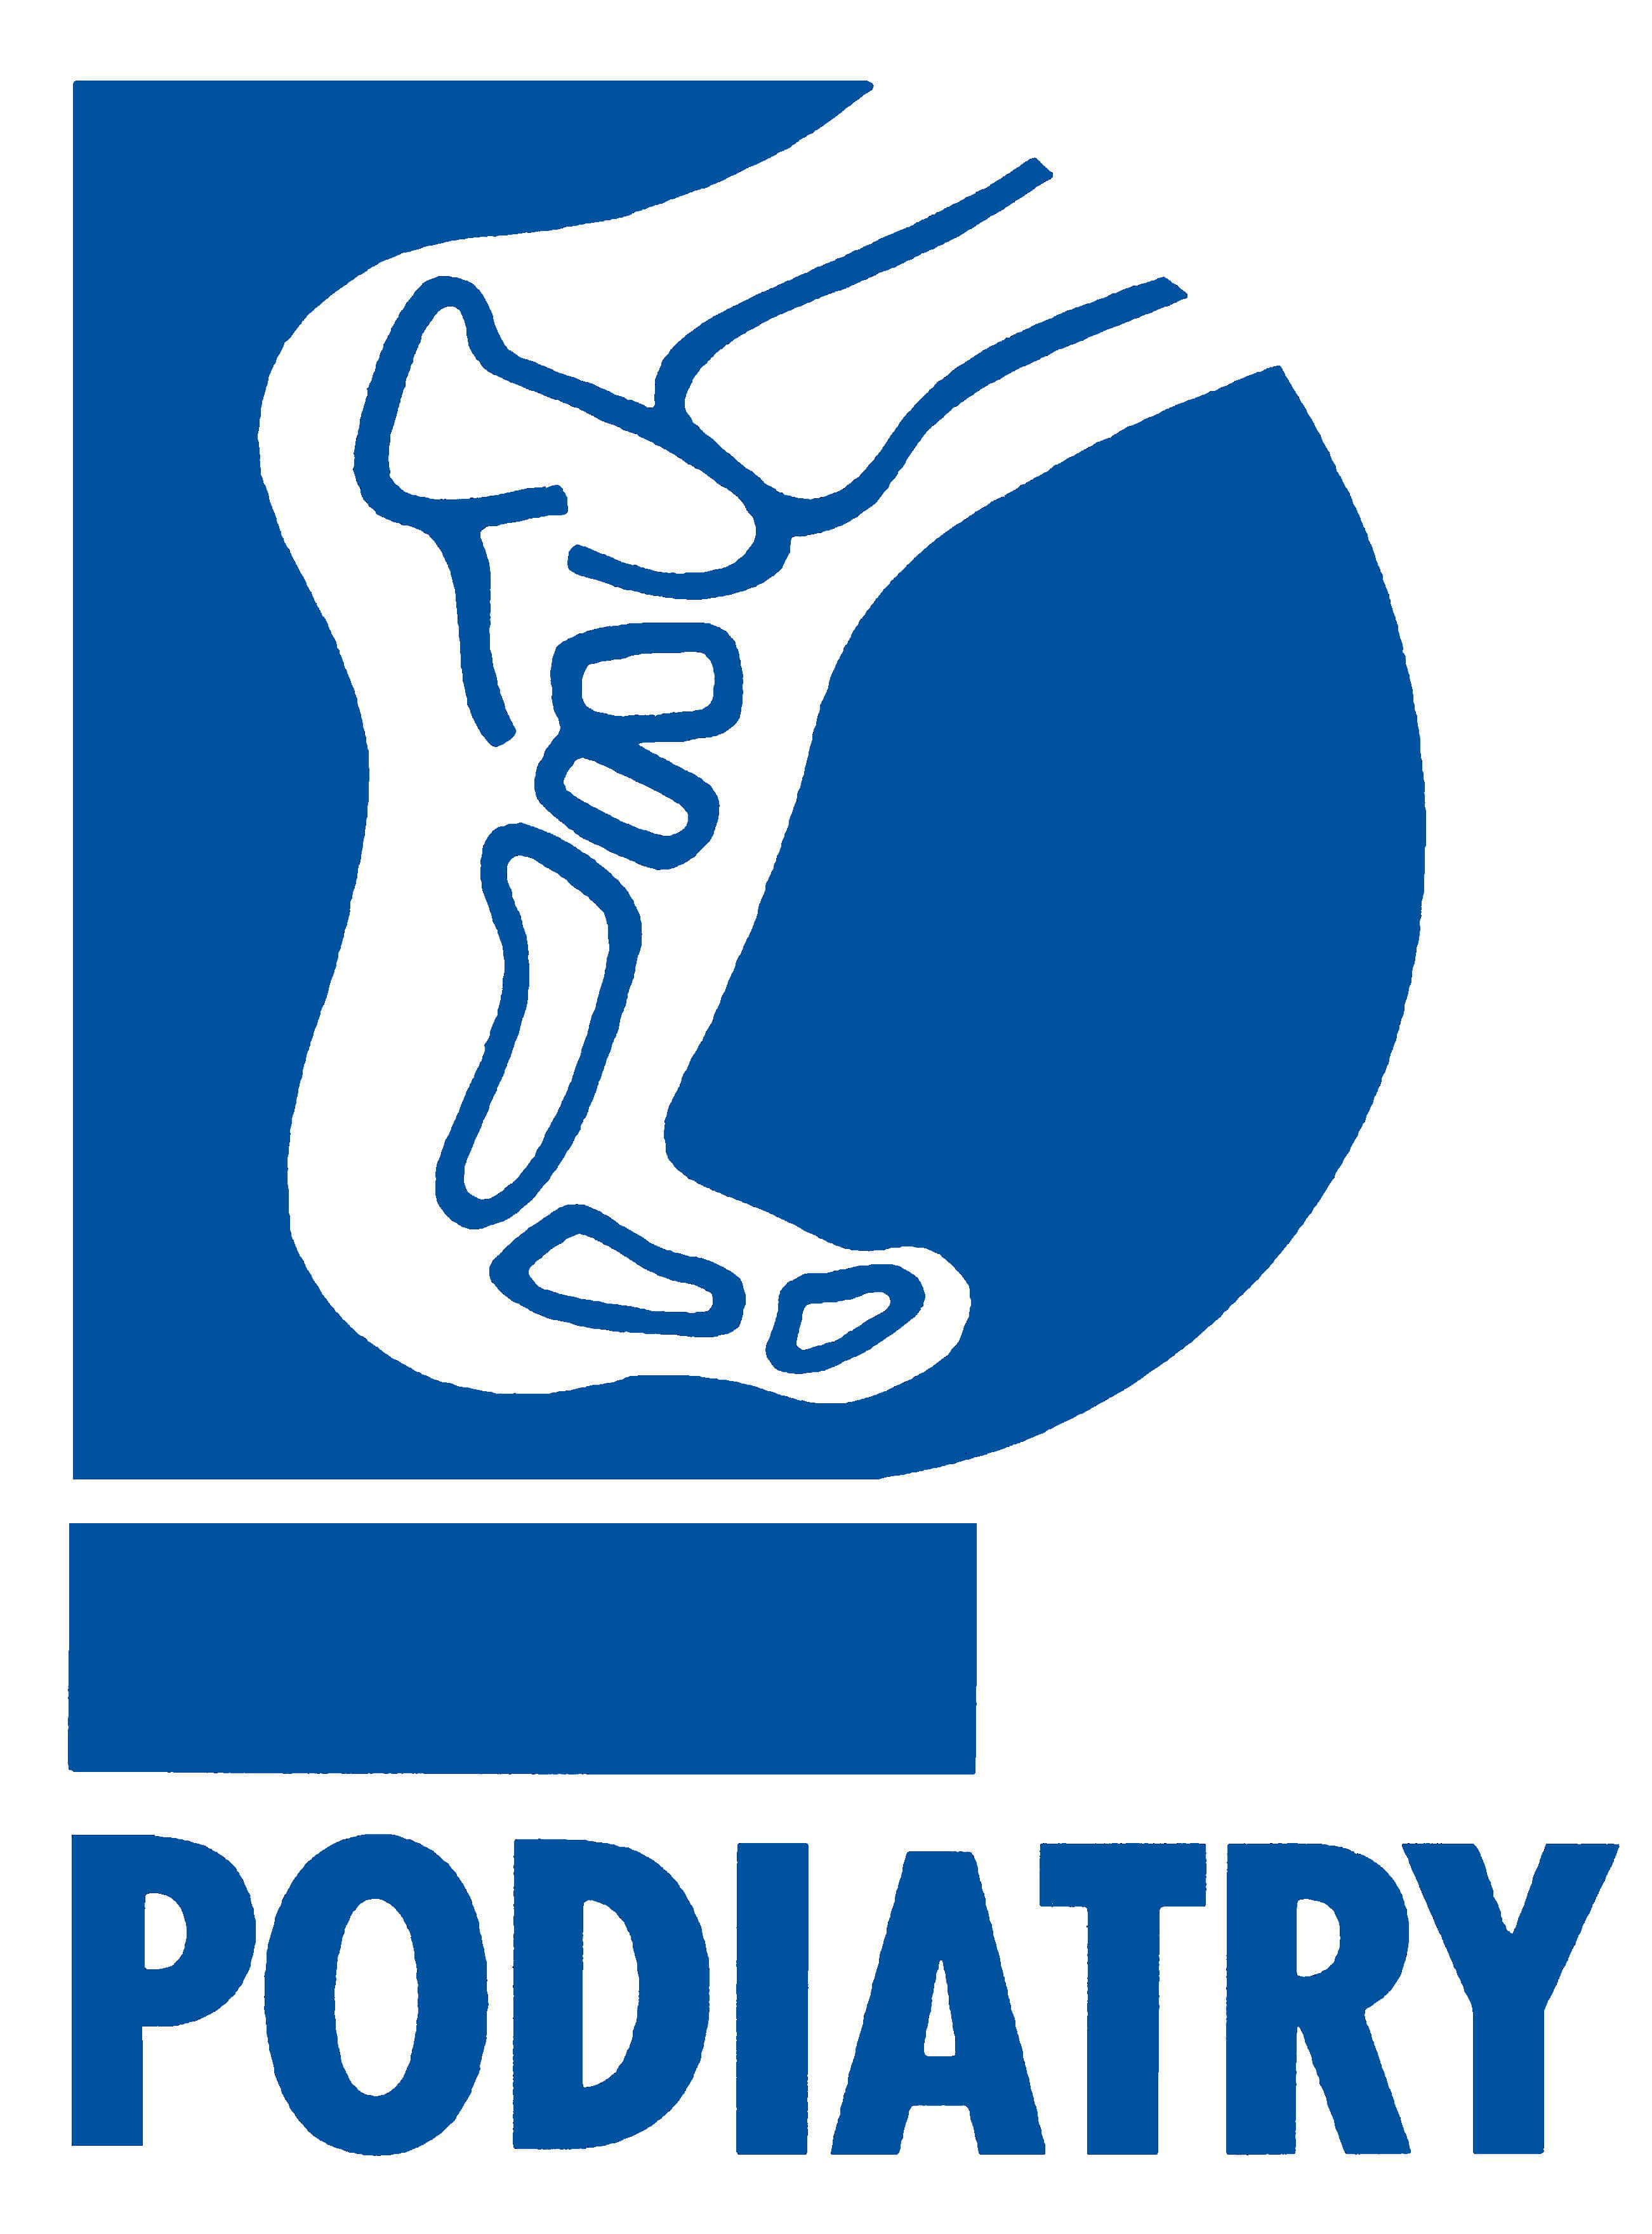 Current General logo 'podiatry' light blue